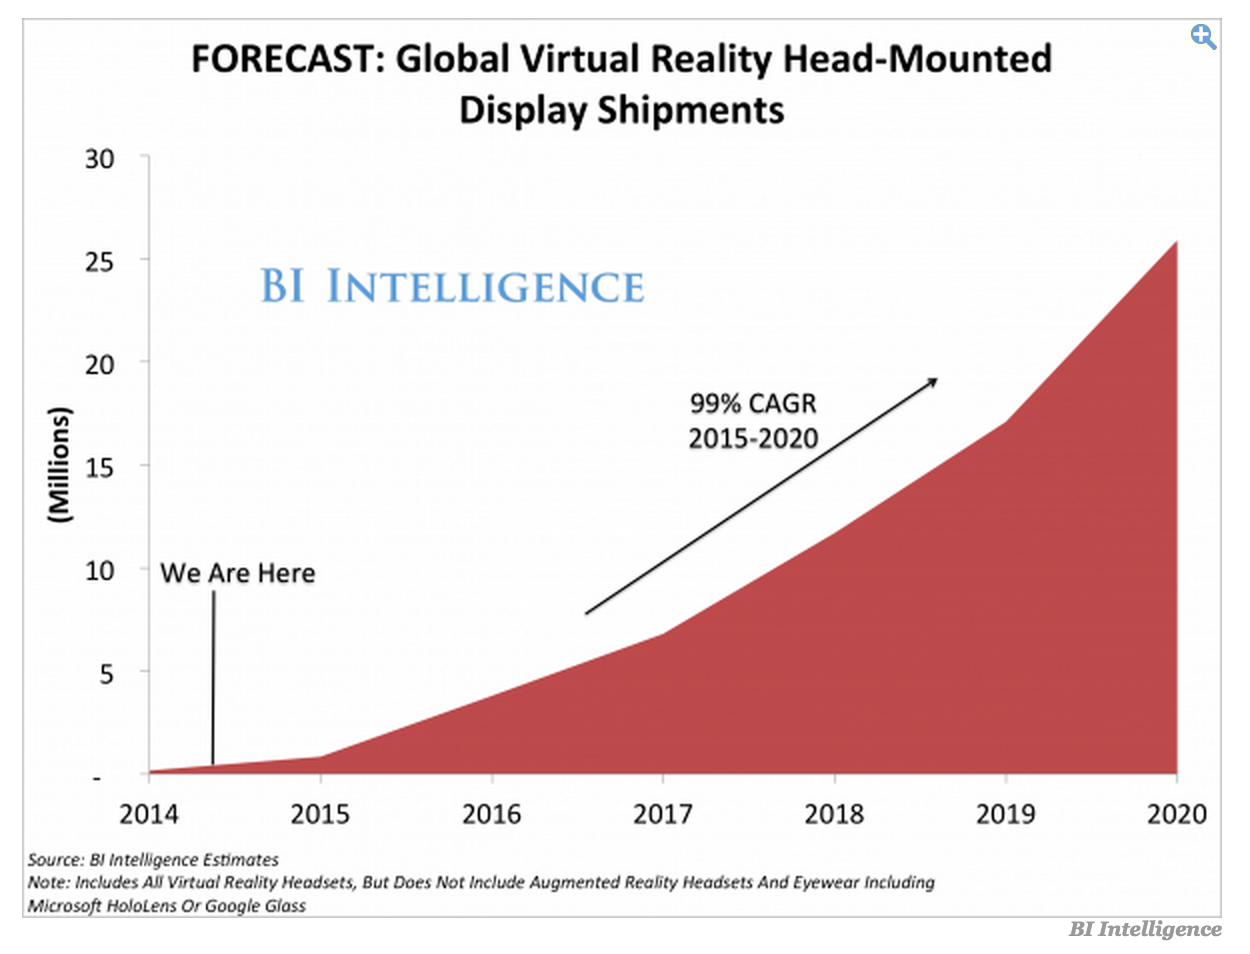 Source: Business Insider Intelligence:The VIRTUAL REALITY REPORT (20 July 2014)